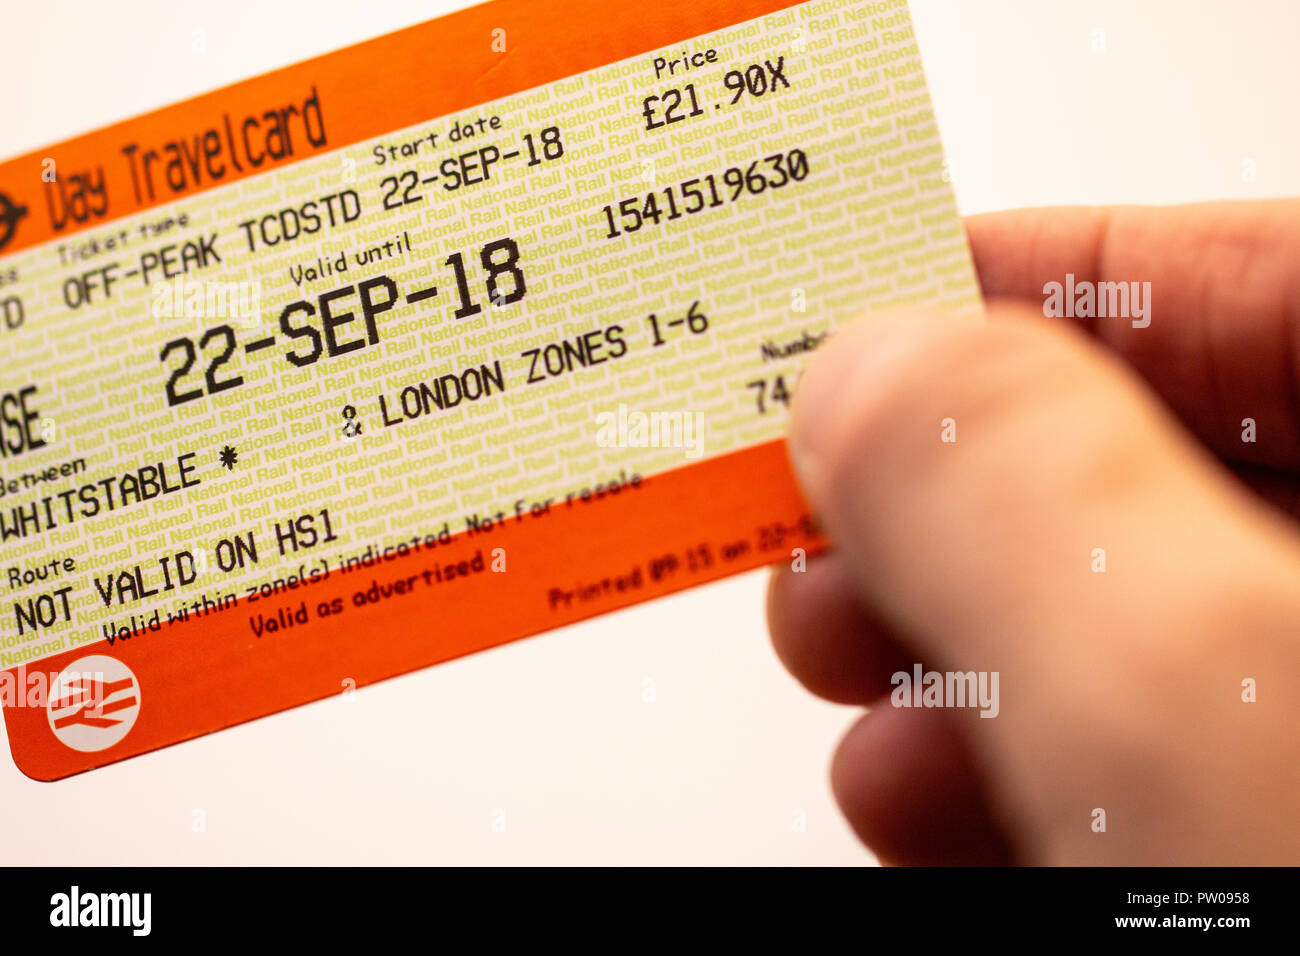 Hand holding British railway ticket, standard off peak one day travelcard, whitestable to London zones 1-6. White plain background. - Stock Image